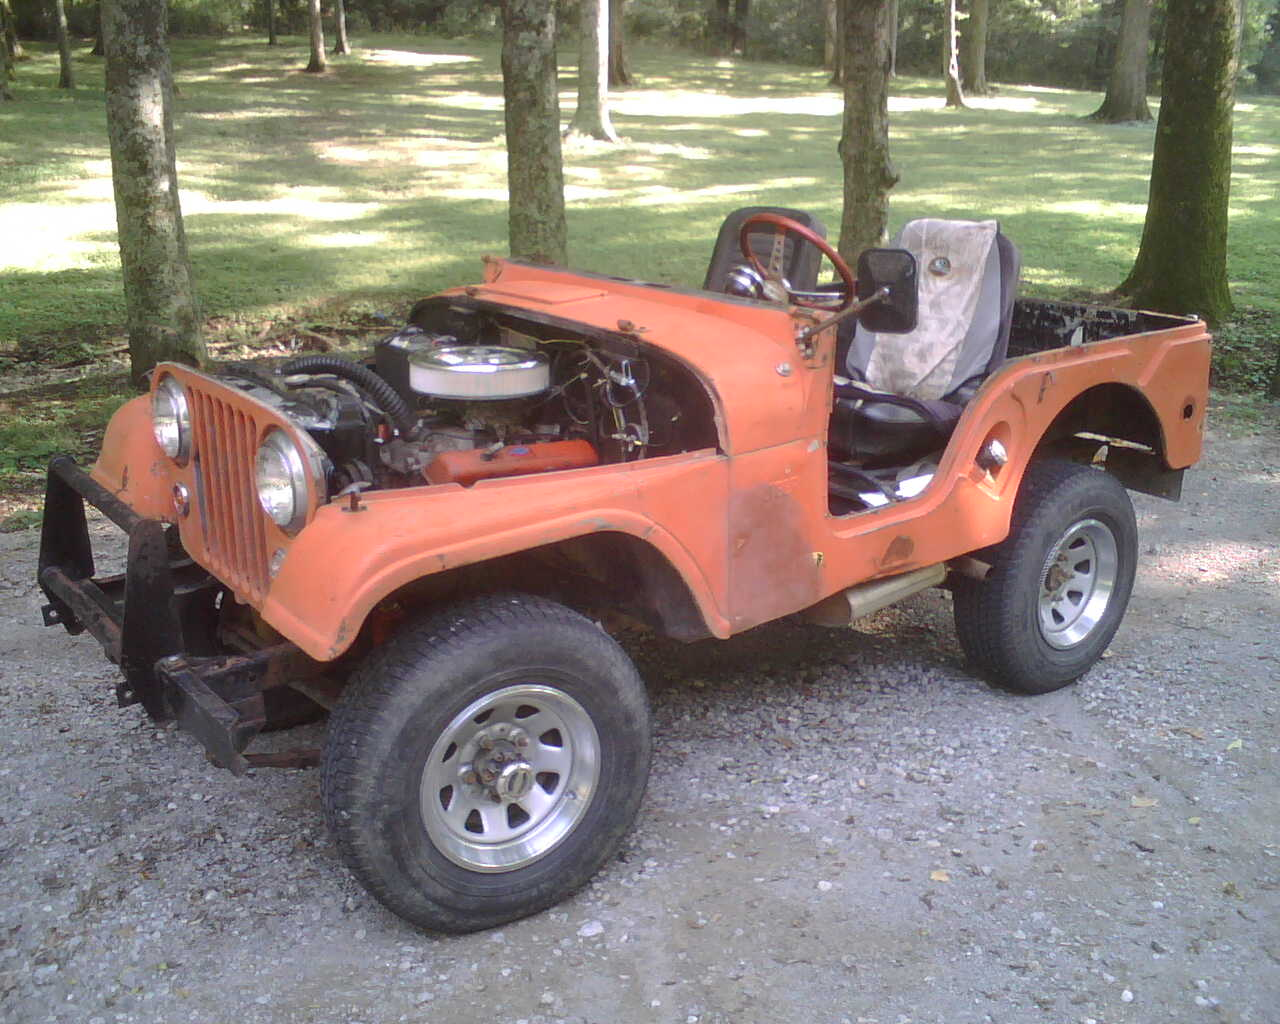 Did I accidentally buy Don Prudhomme's hot-rodded Willys CJ-5 for $1600?